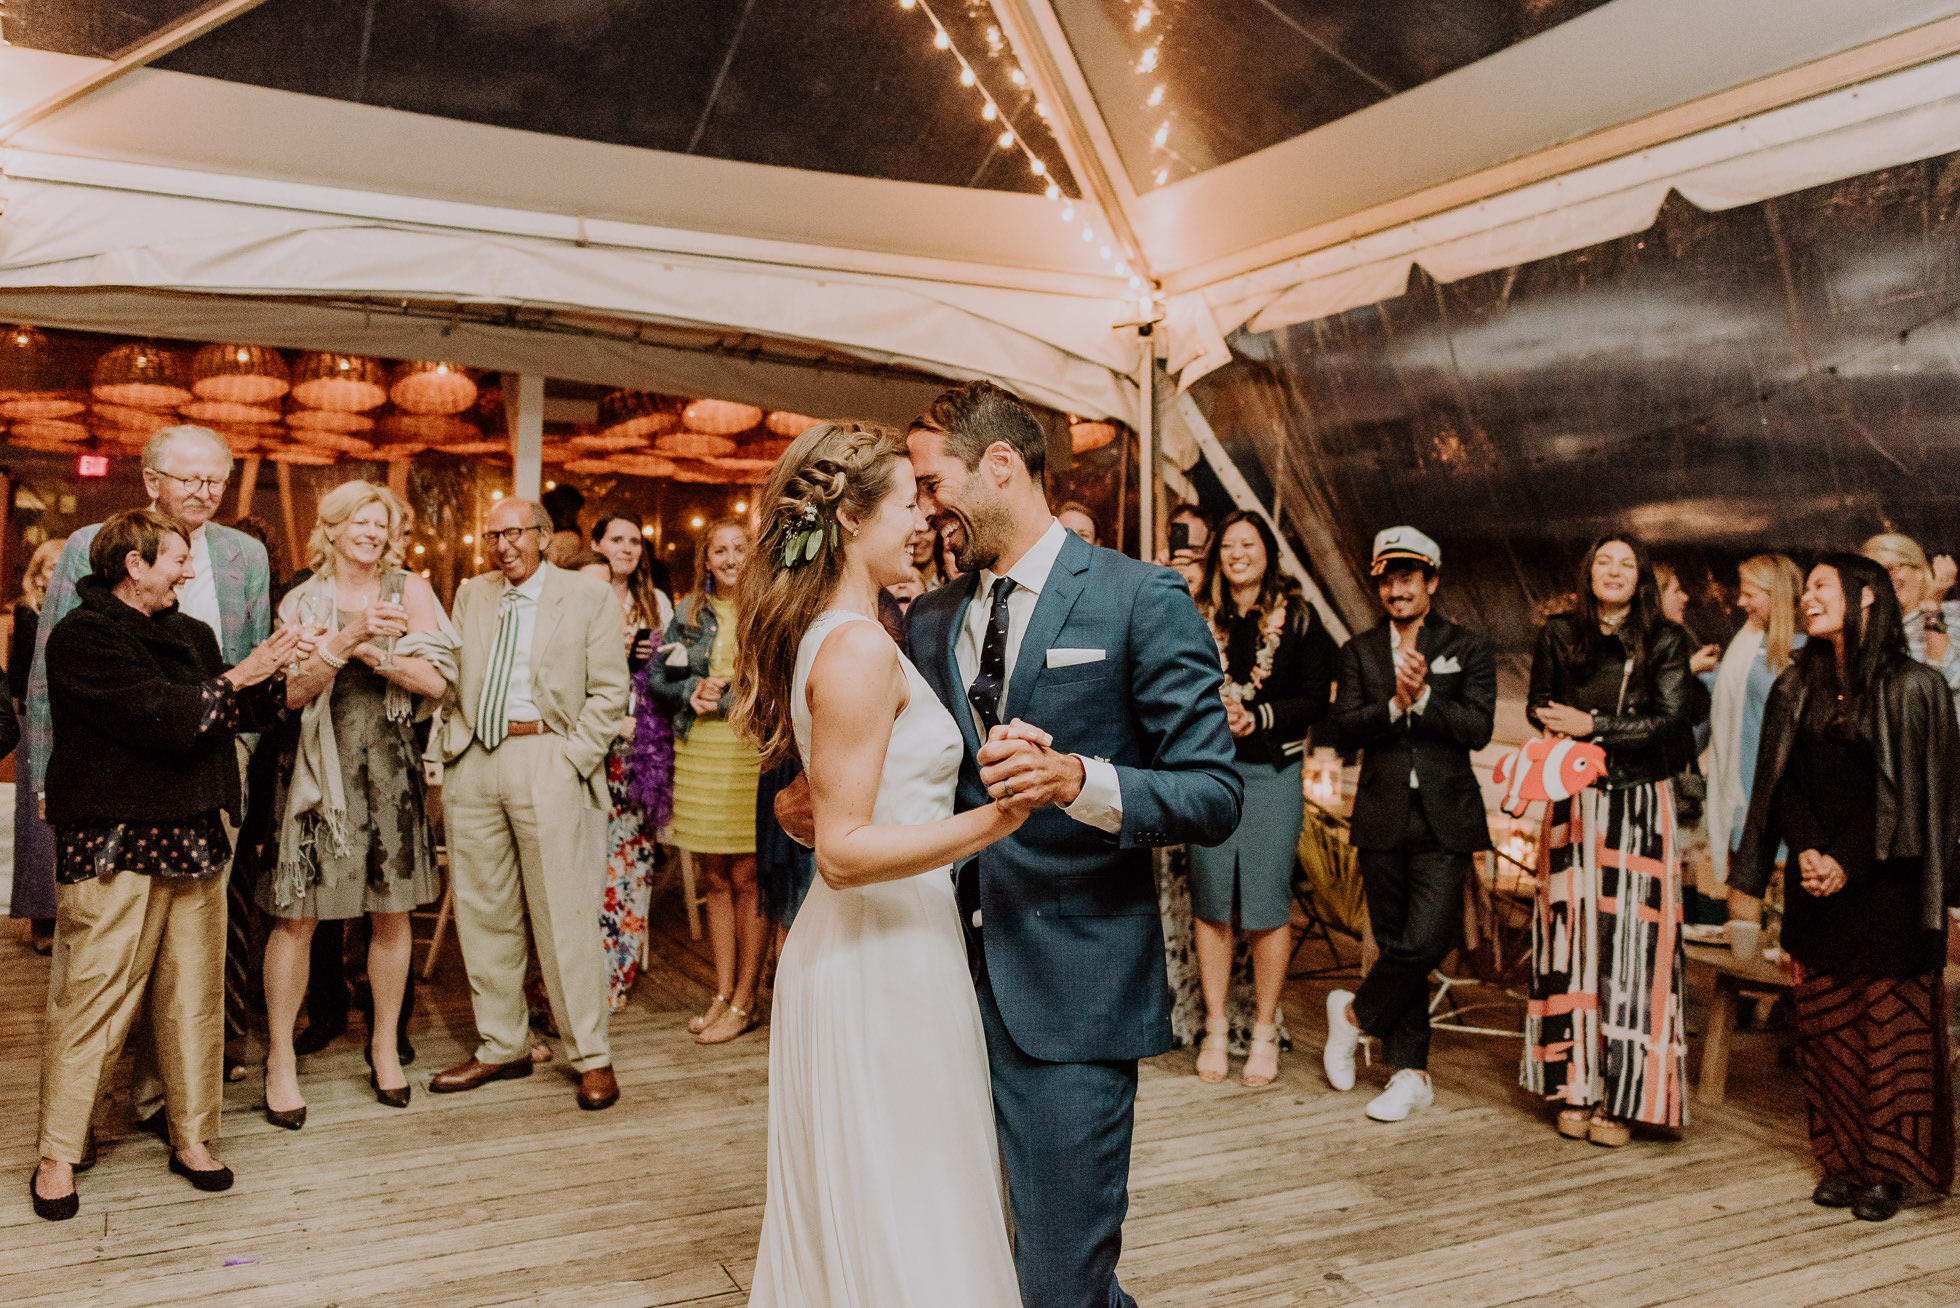 boho bride and groom first dance at the surf lodge reception Montauk wedding photographed by Traverse the Tides